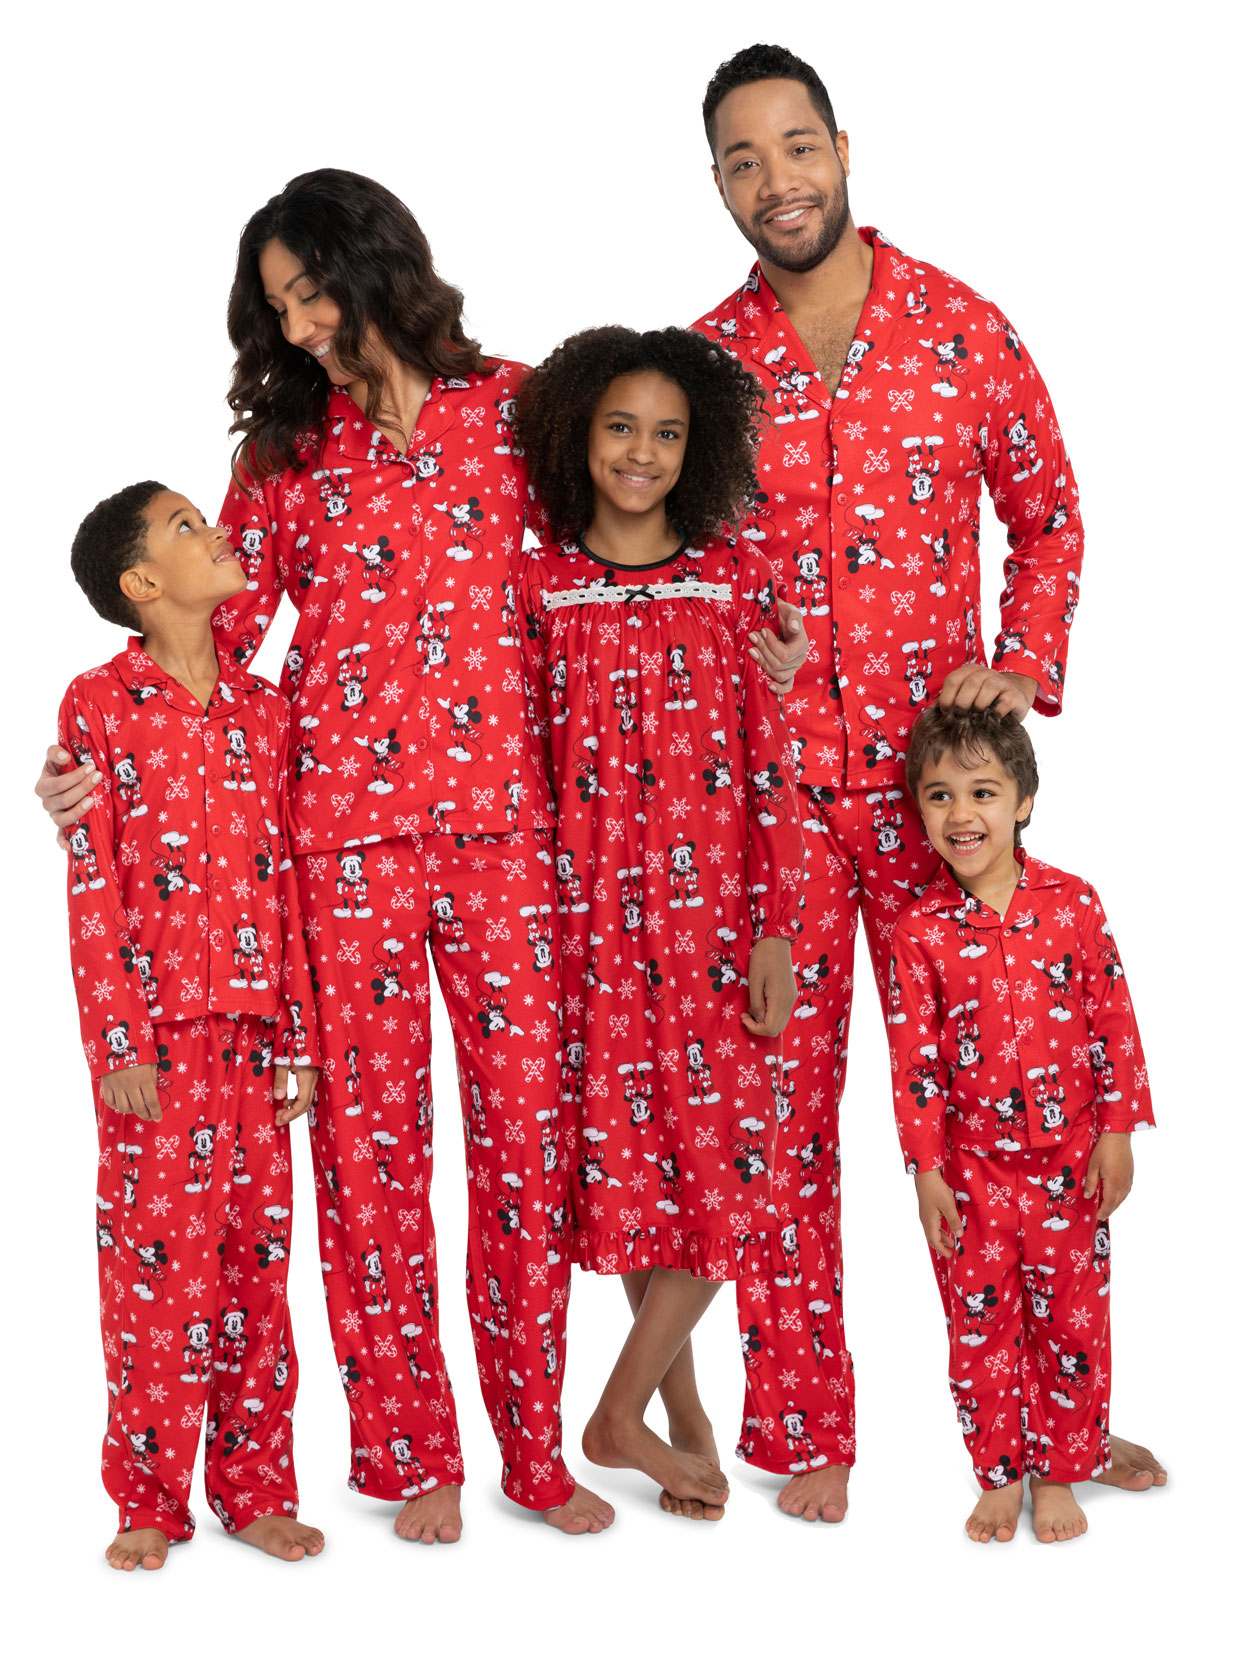 Mickey Mouse Christmas Toddler Granny Gown Nightgown Family Pajamas 21MK456TGL